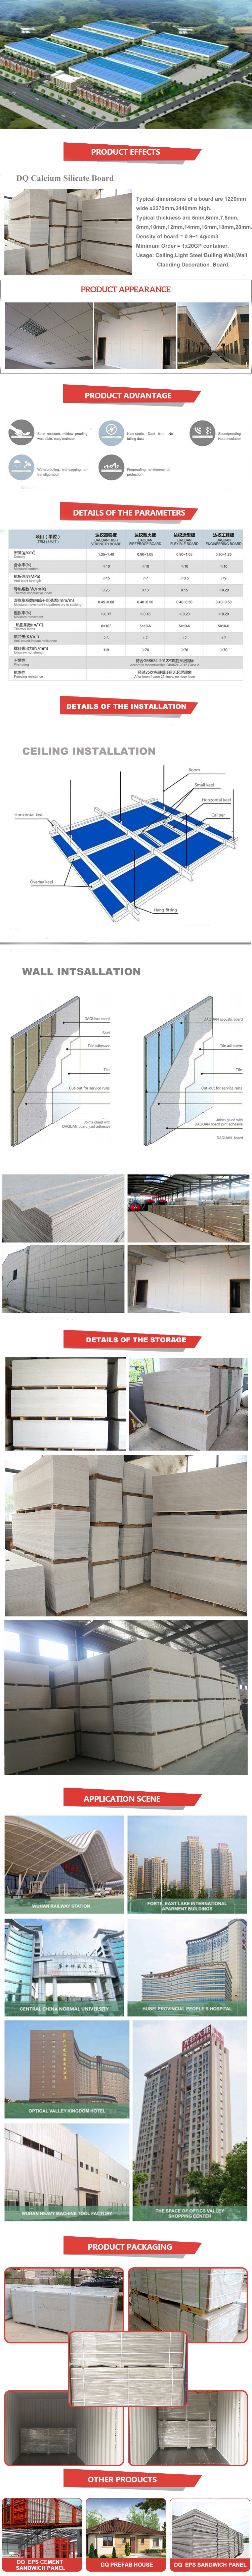 Firepproof Calcium Silicate Board for industry